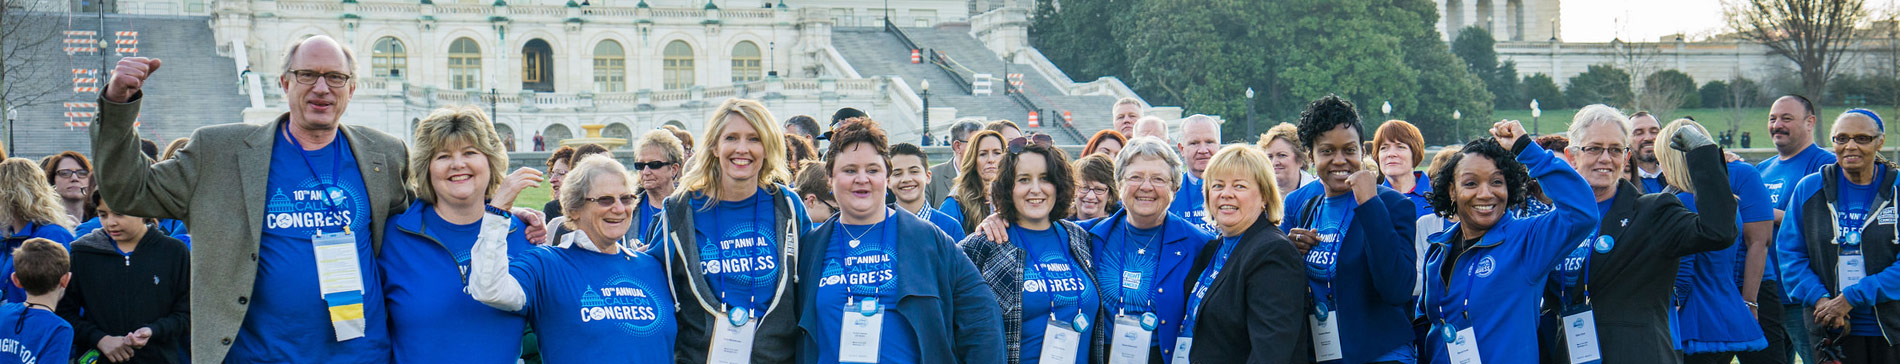 Colorectal Cancer Survivors at Call on Congress